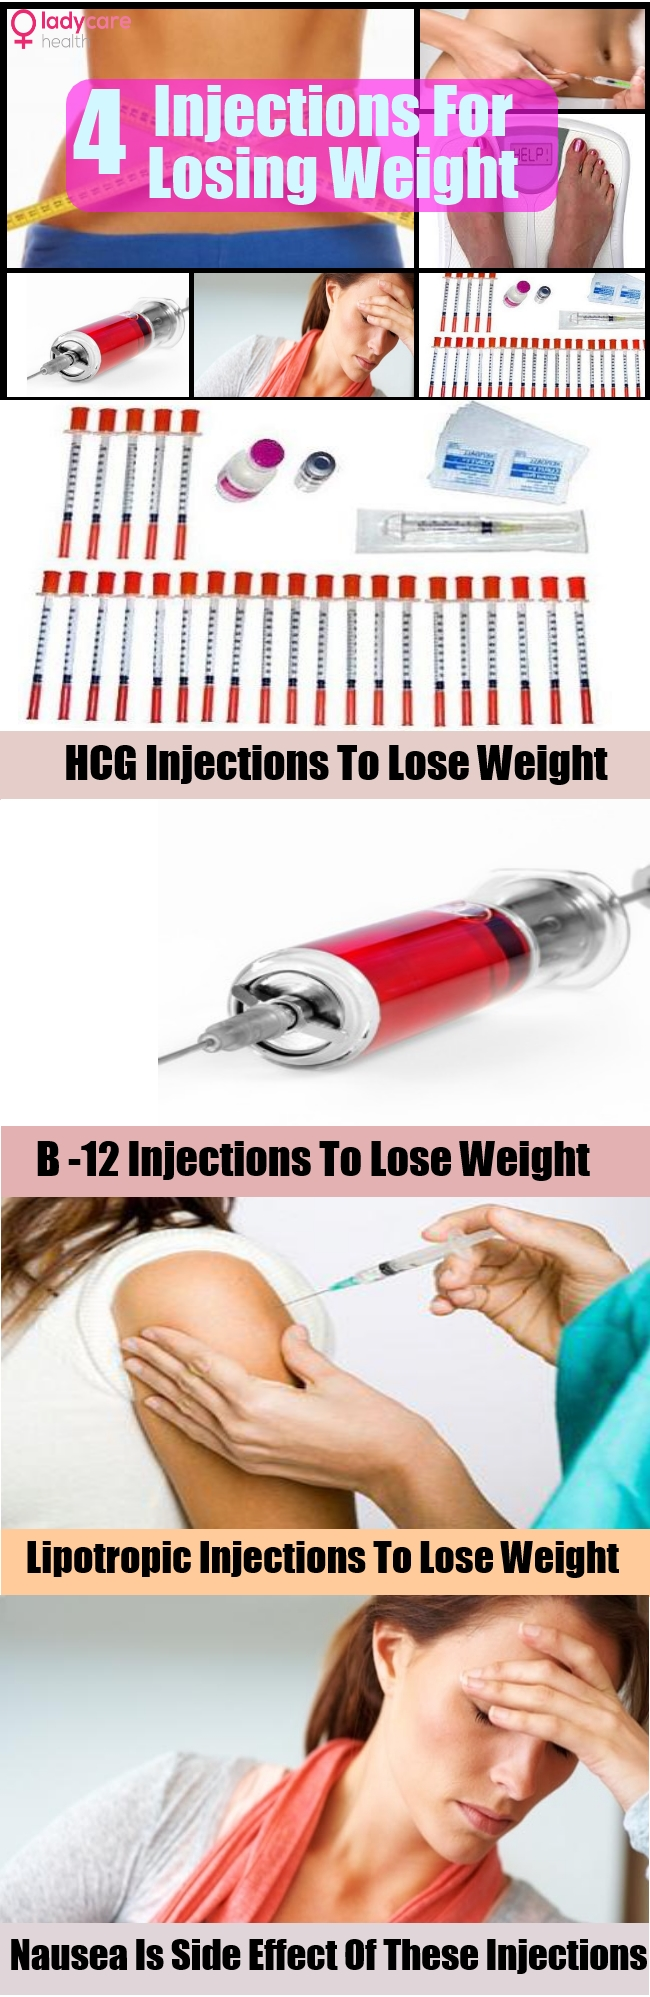 Different Kinds Of Injections For Losing Weight